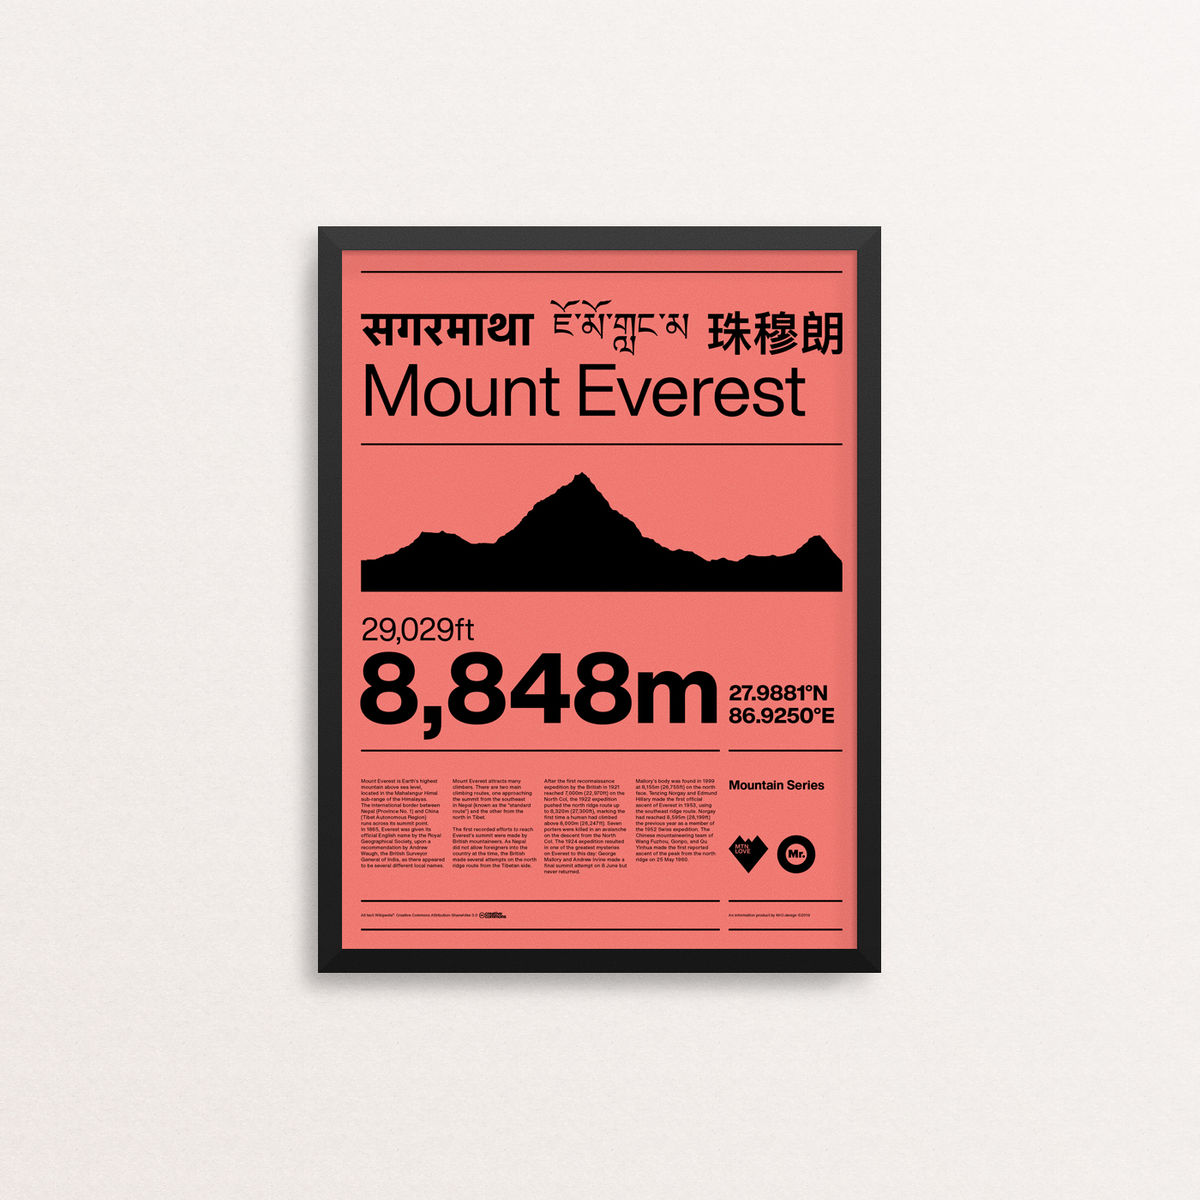 MTN Love - Mount Everest - product image